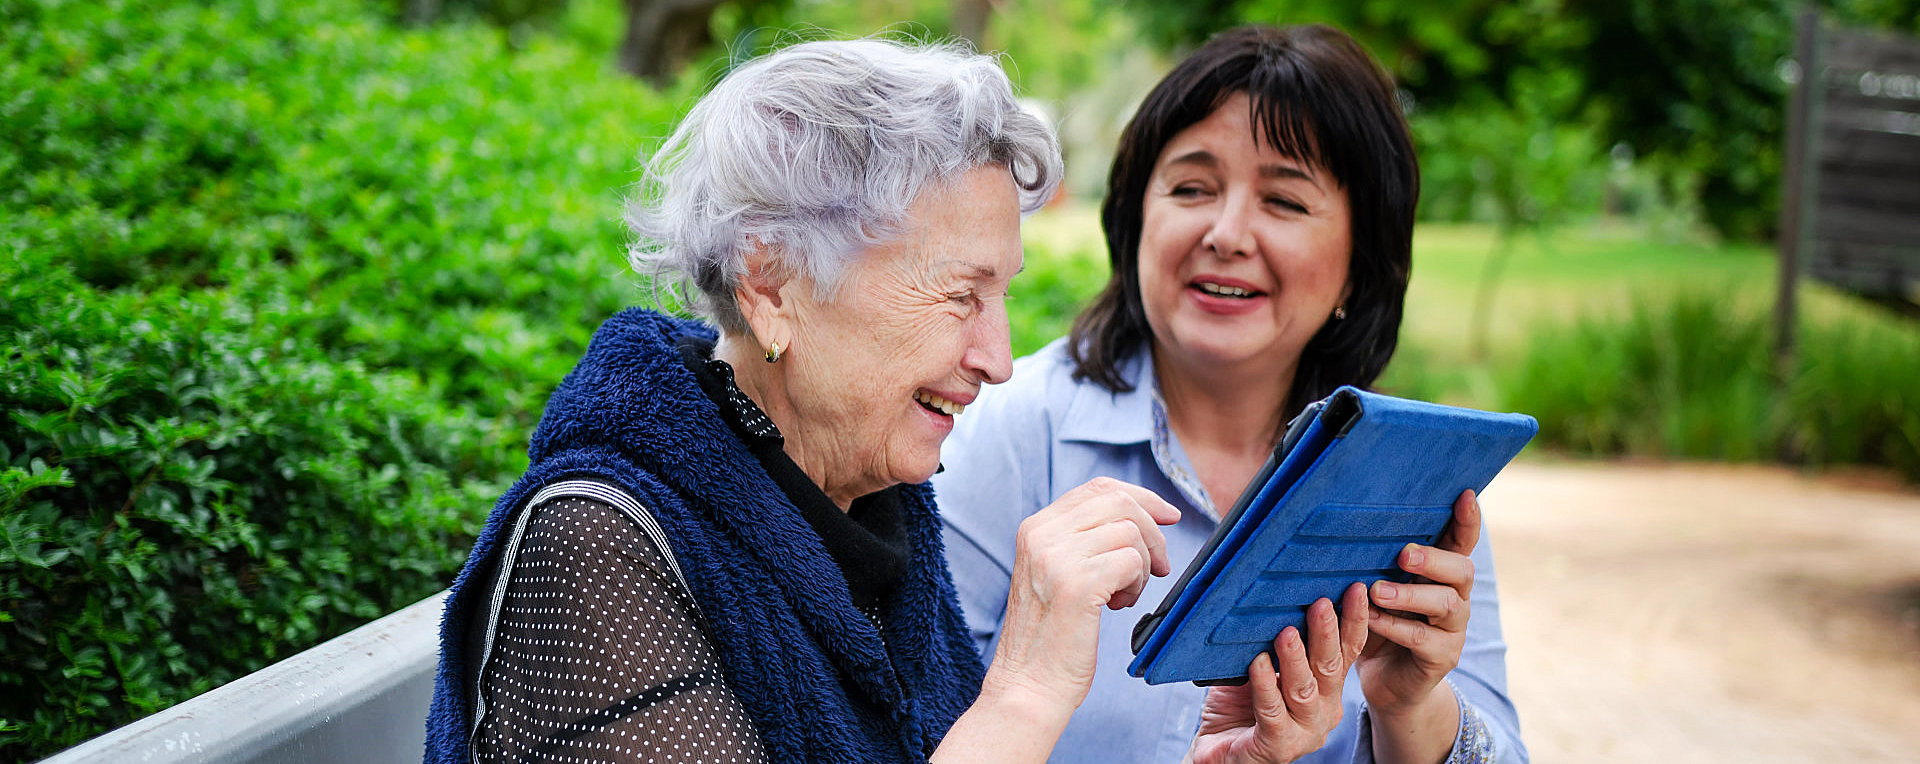 caregiver giving a tablet to patient